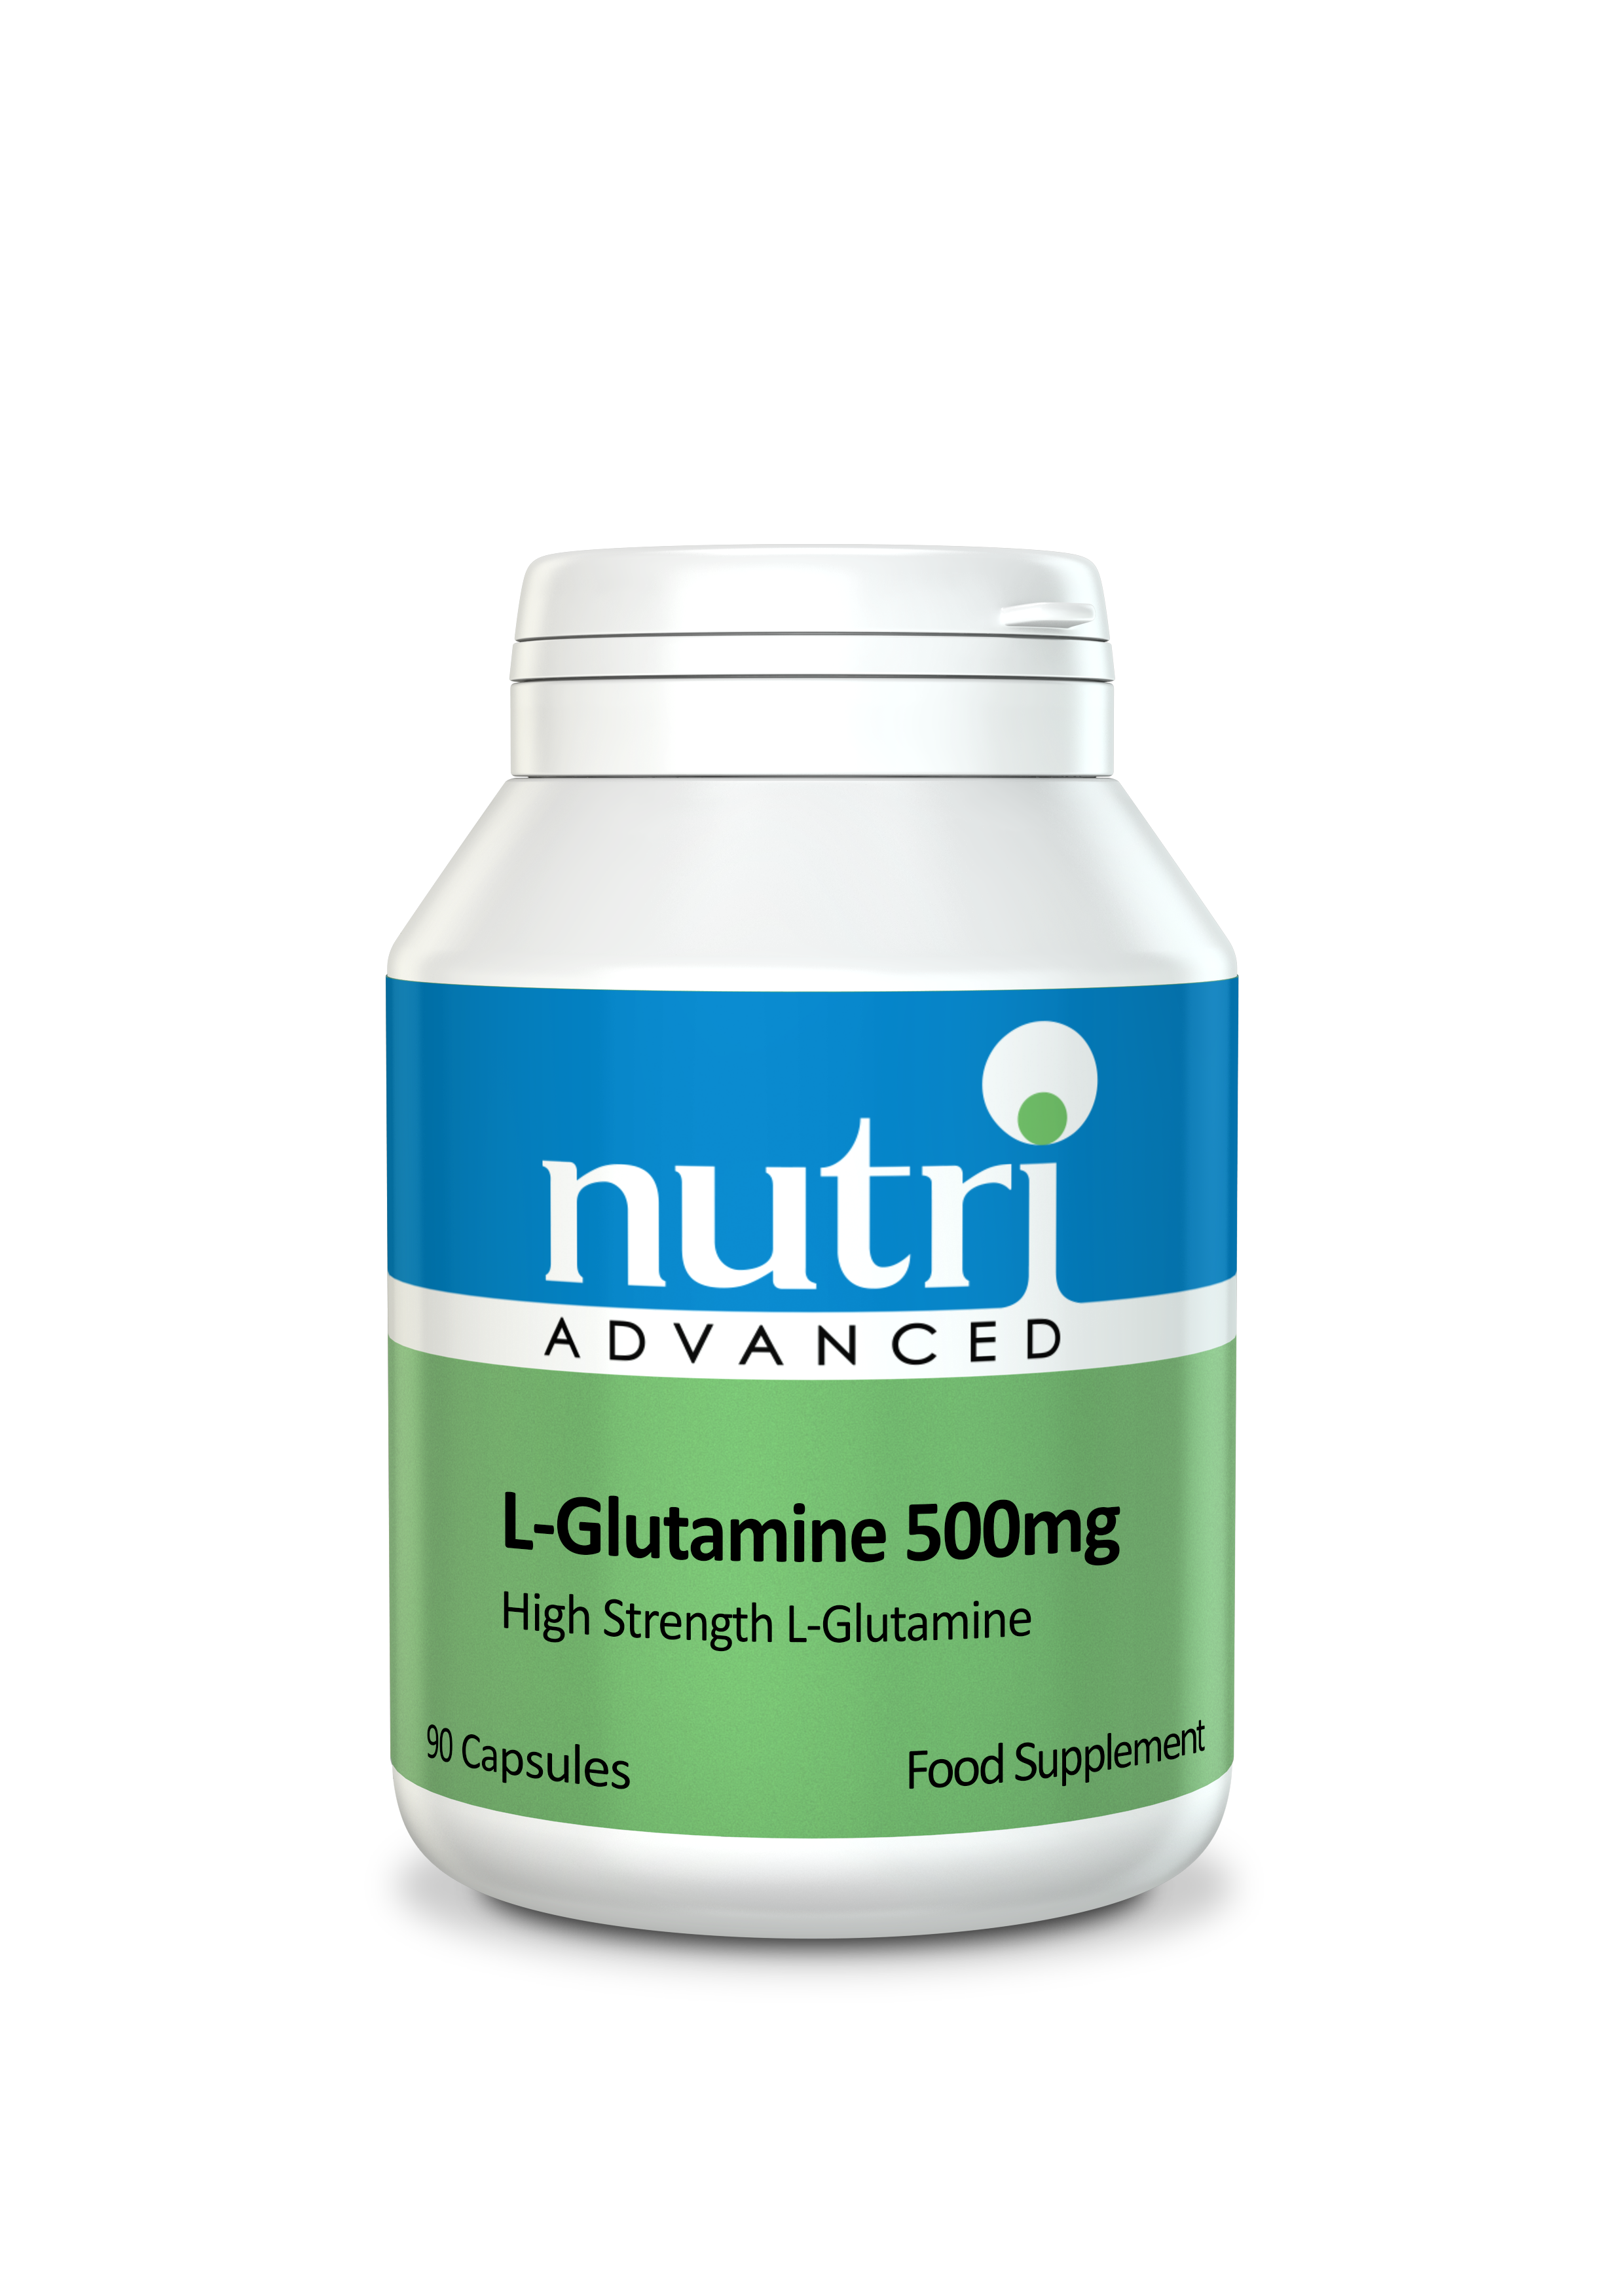 Nutri Advanced L-Glutamine 500mg - 90